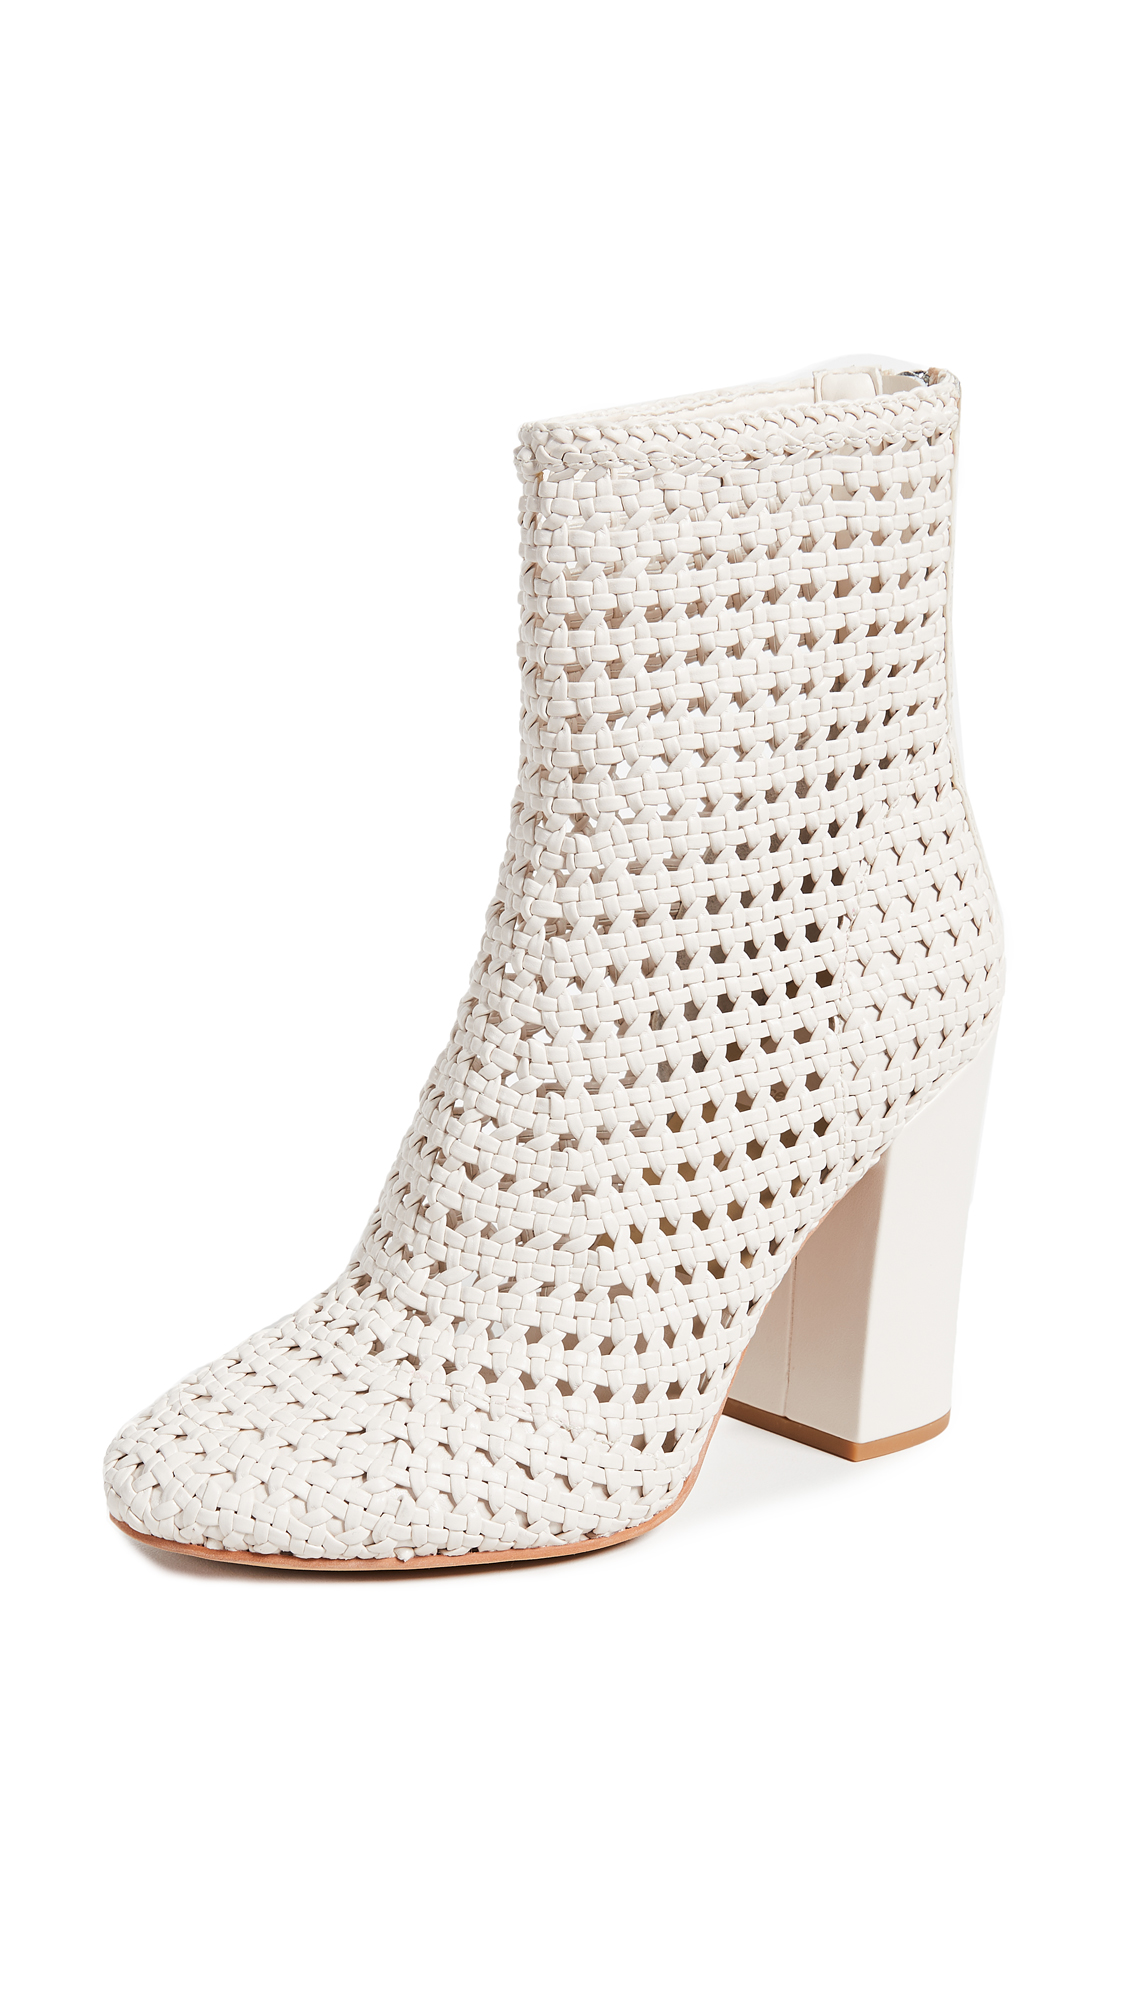 Dolce Vita Scotch Woven Ankle Boots with Block Heel - Ivory